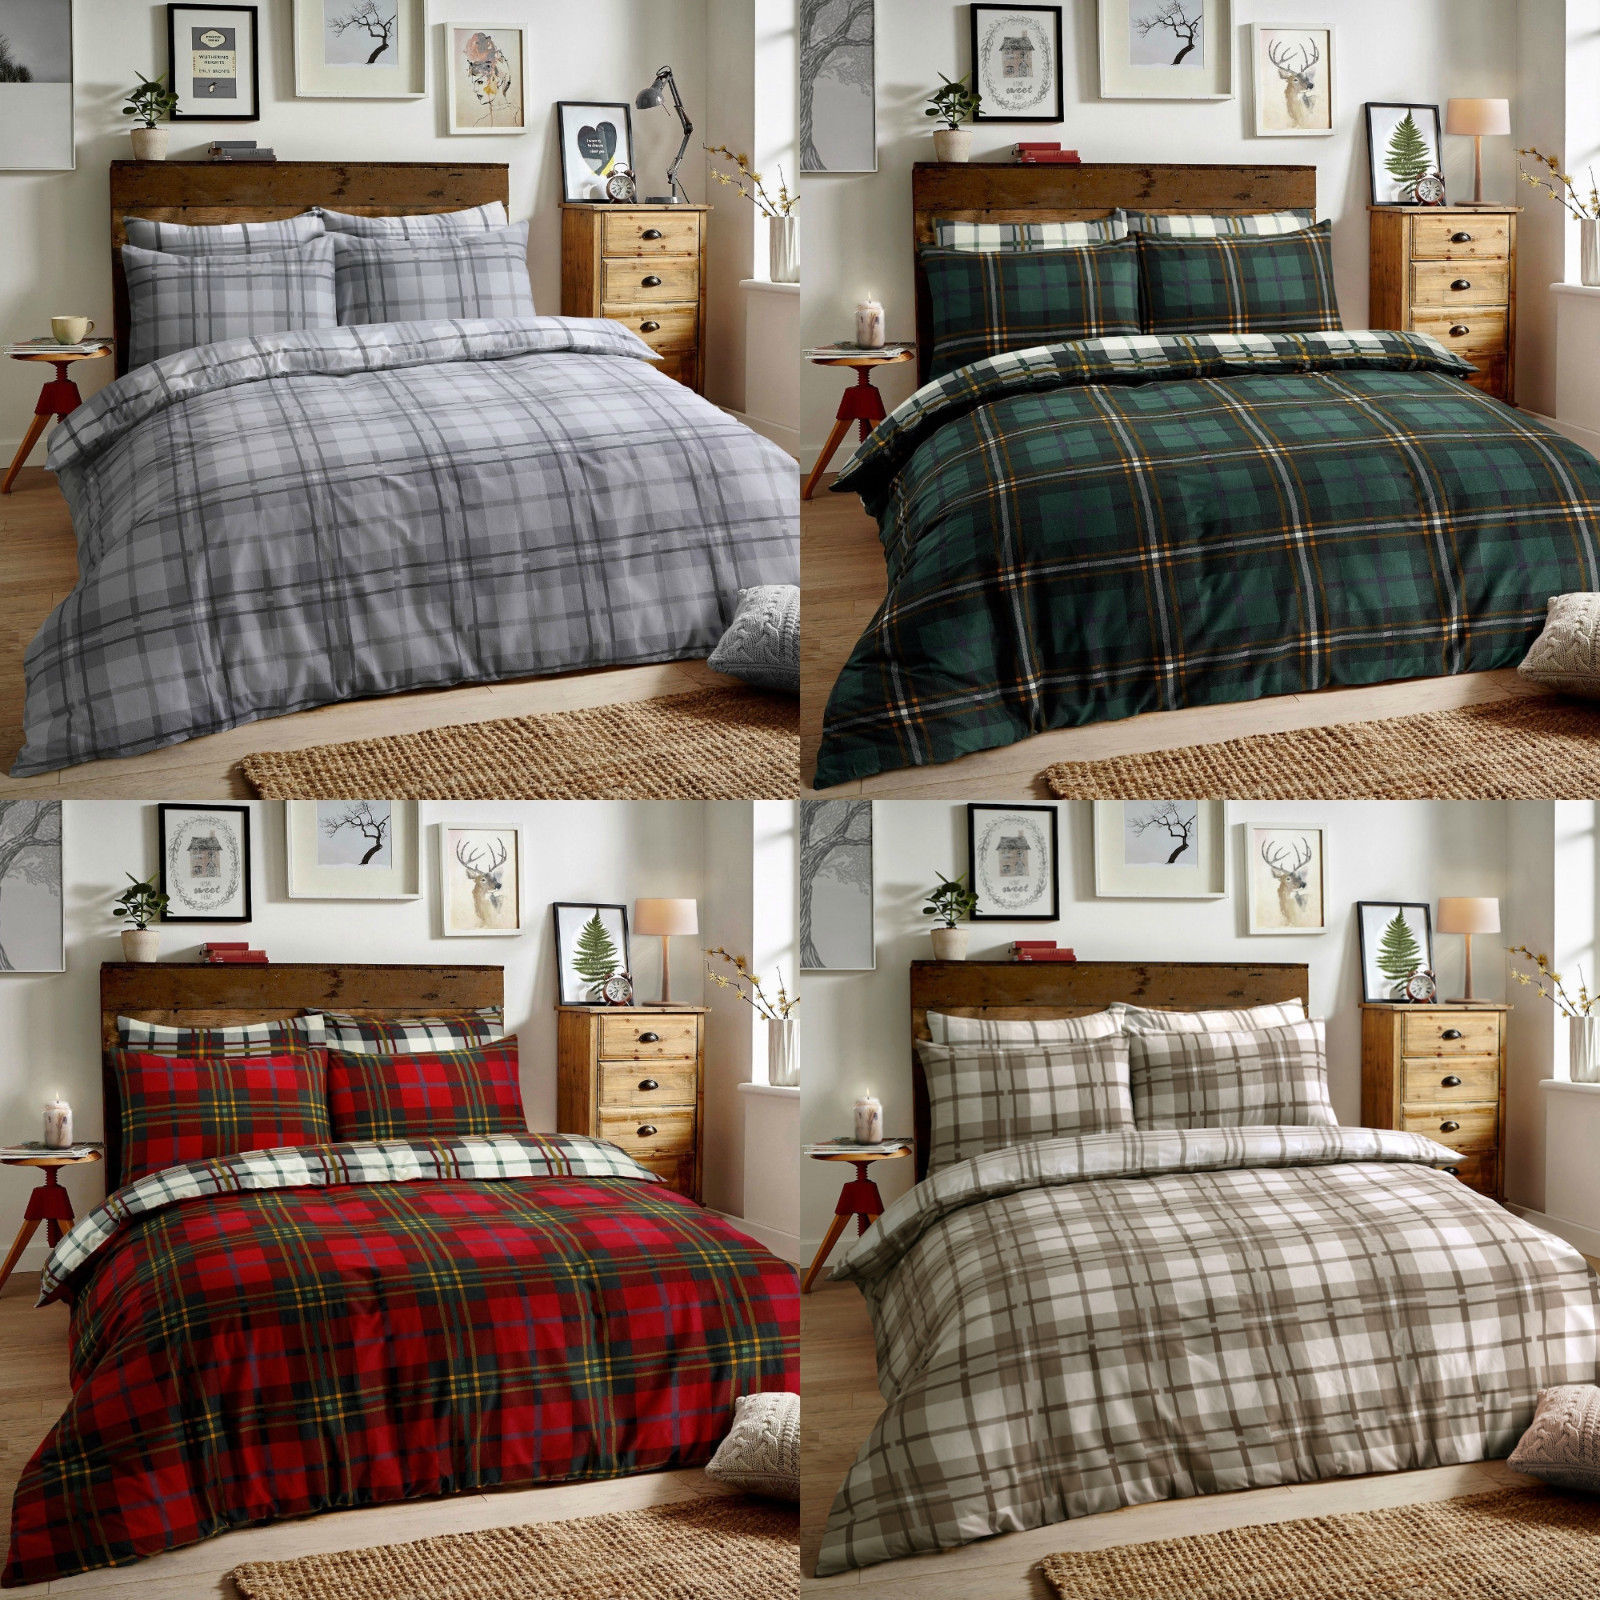 Flannelette Duvet Quilt Cover Bedding Set With Matching